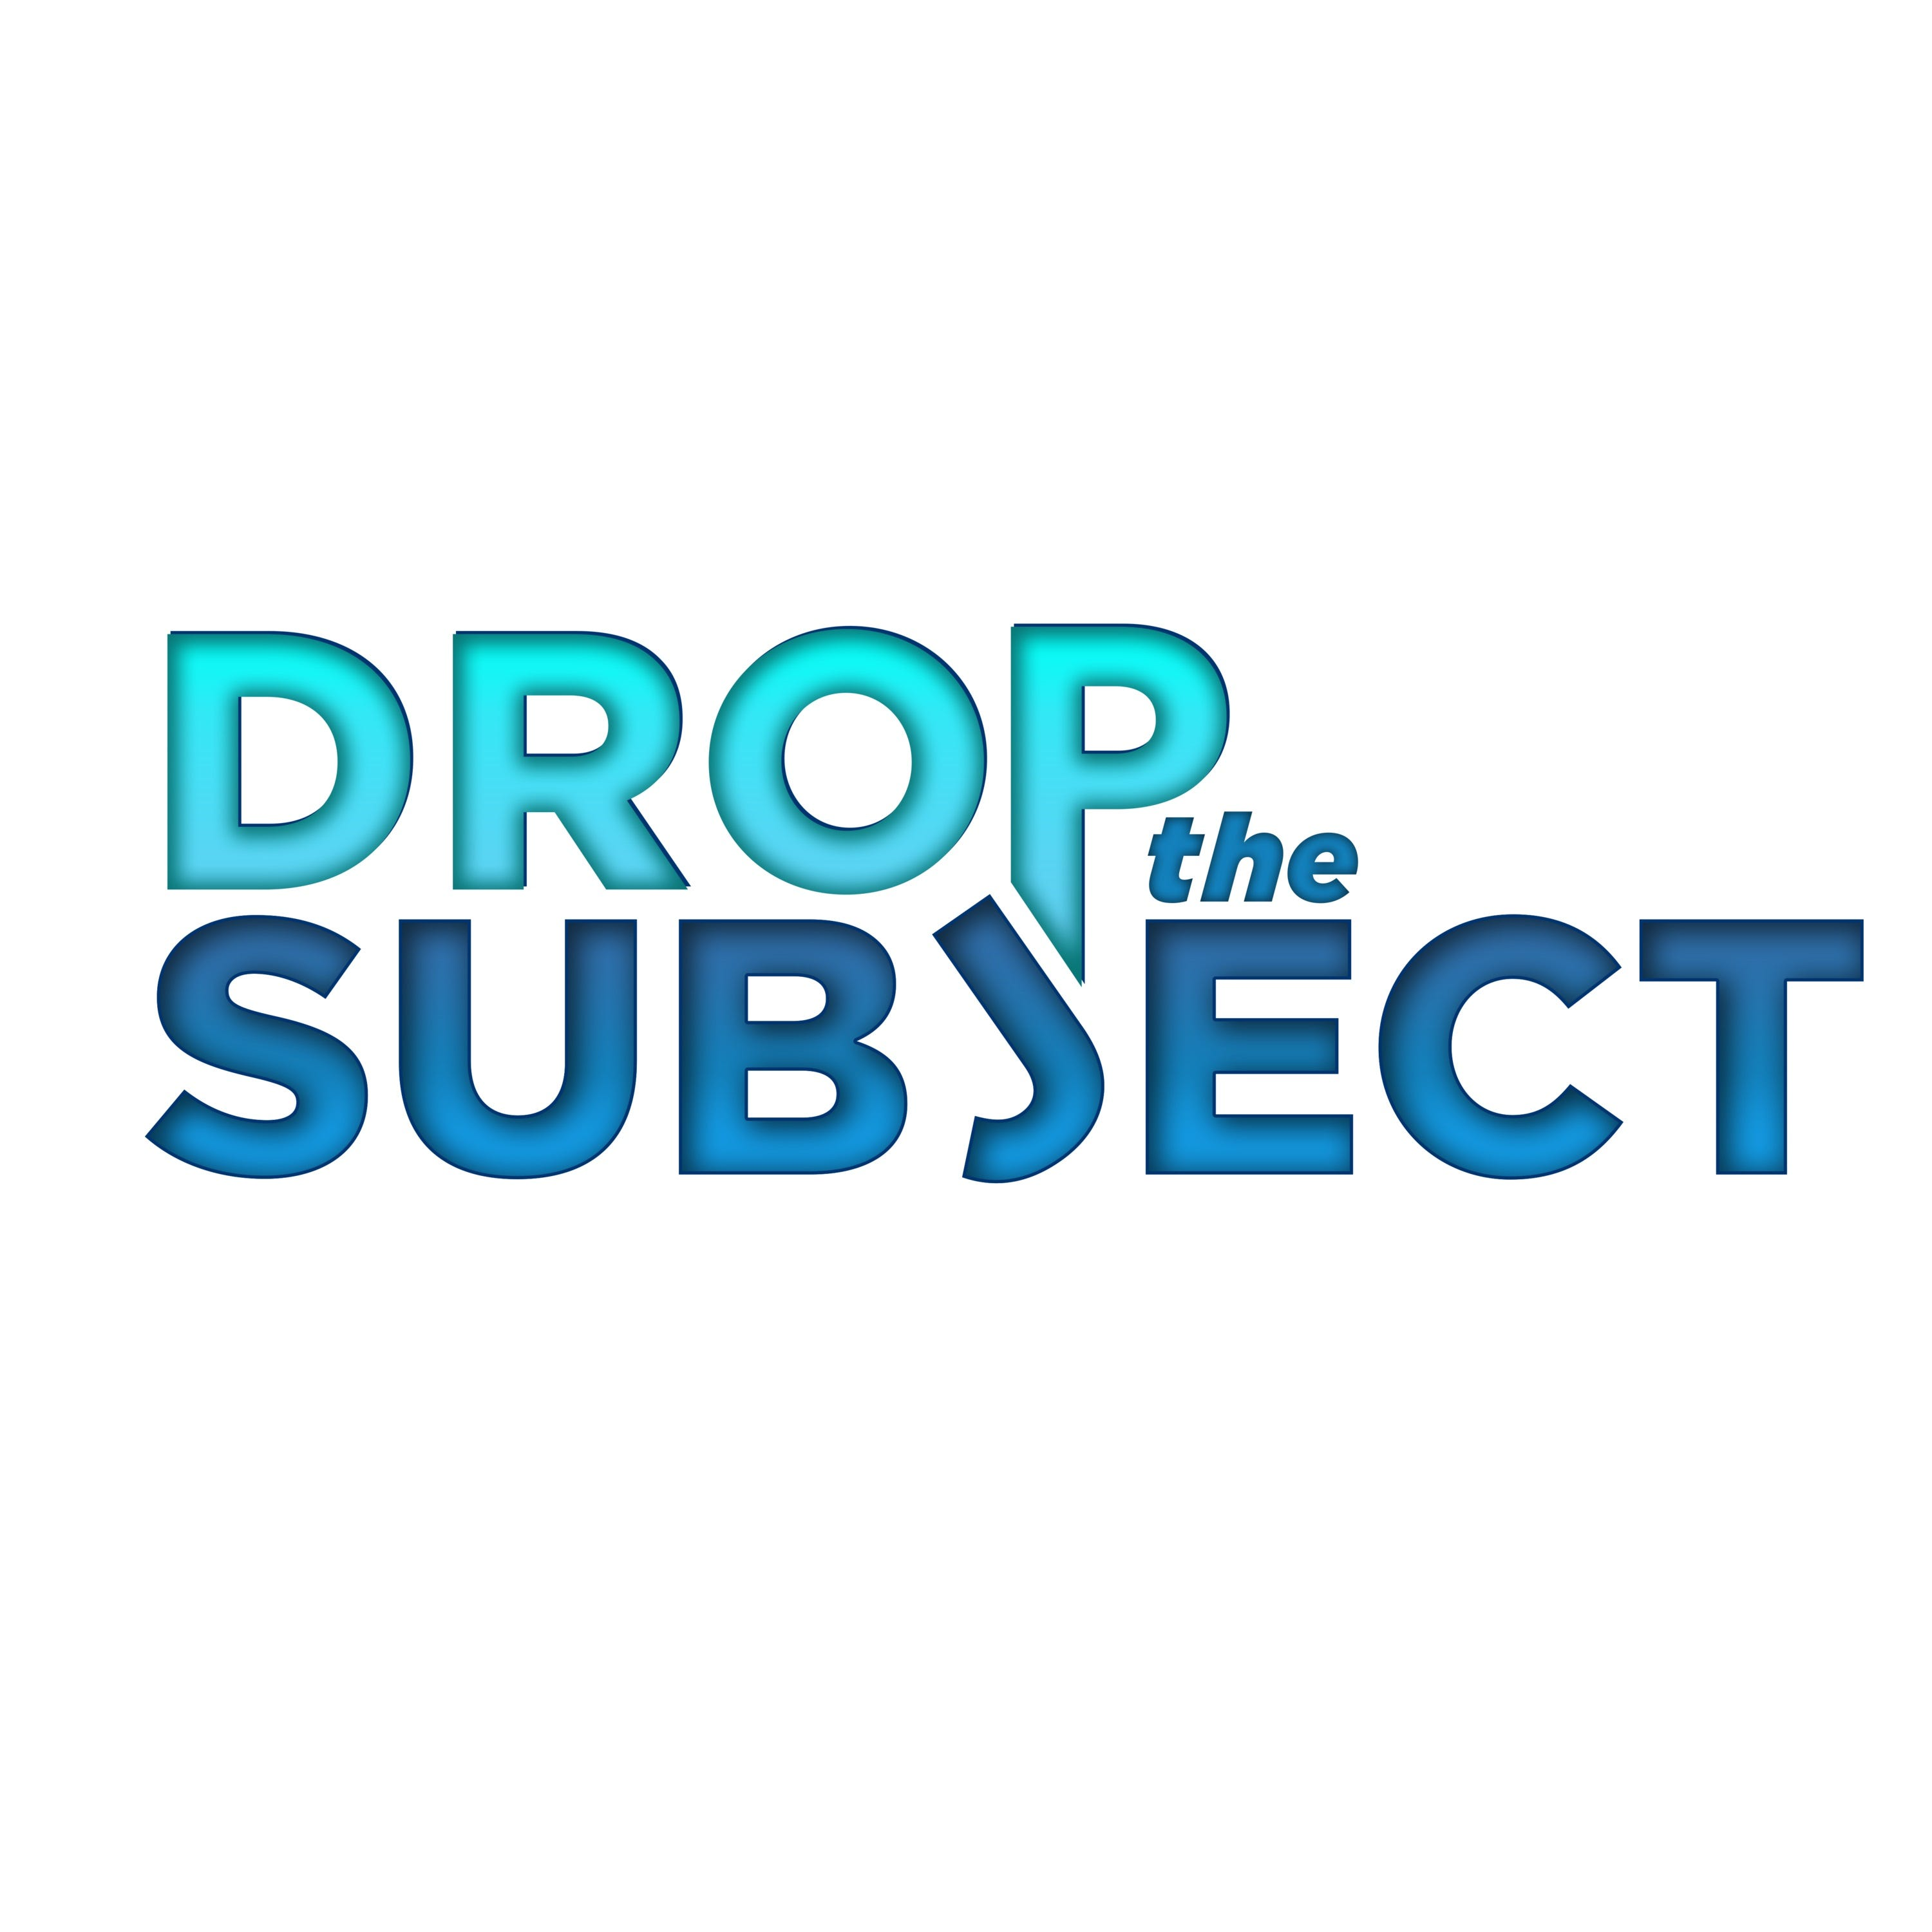 Drop the Subject